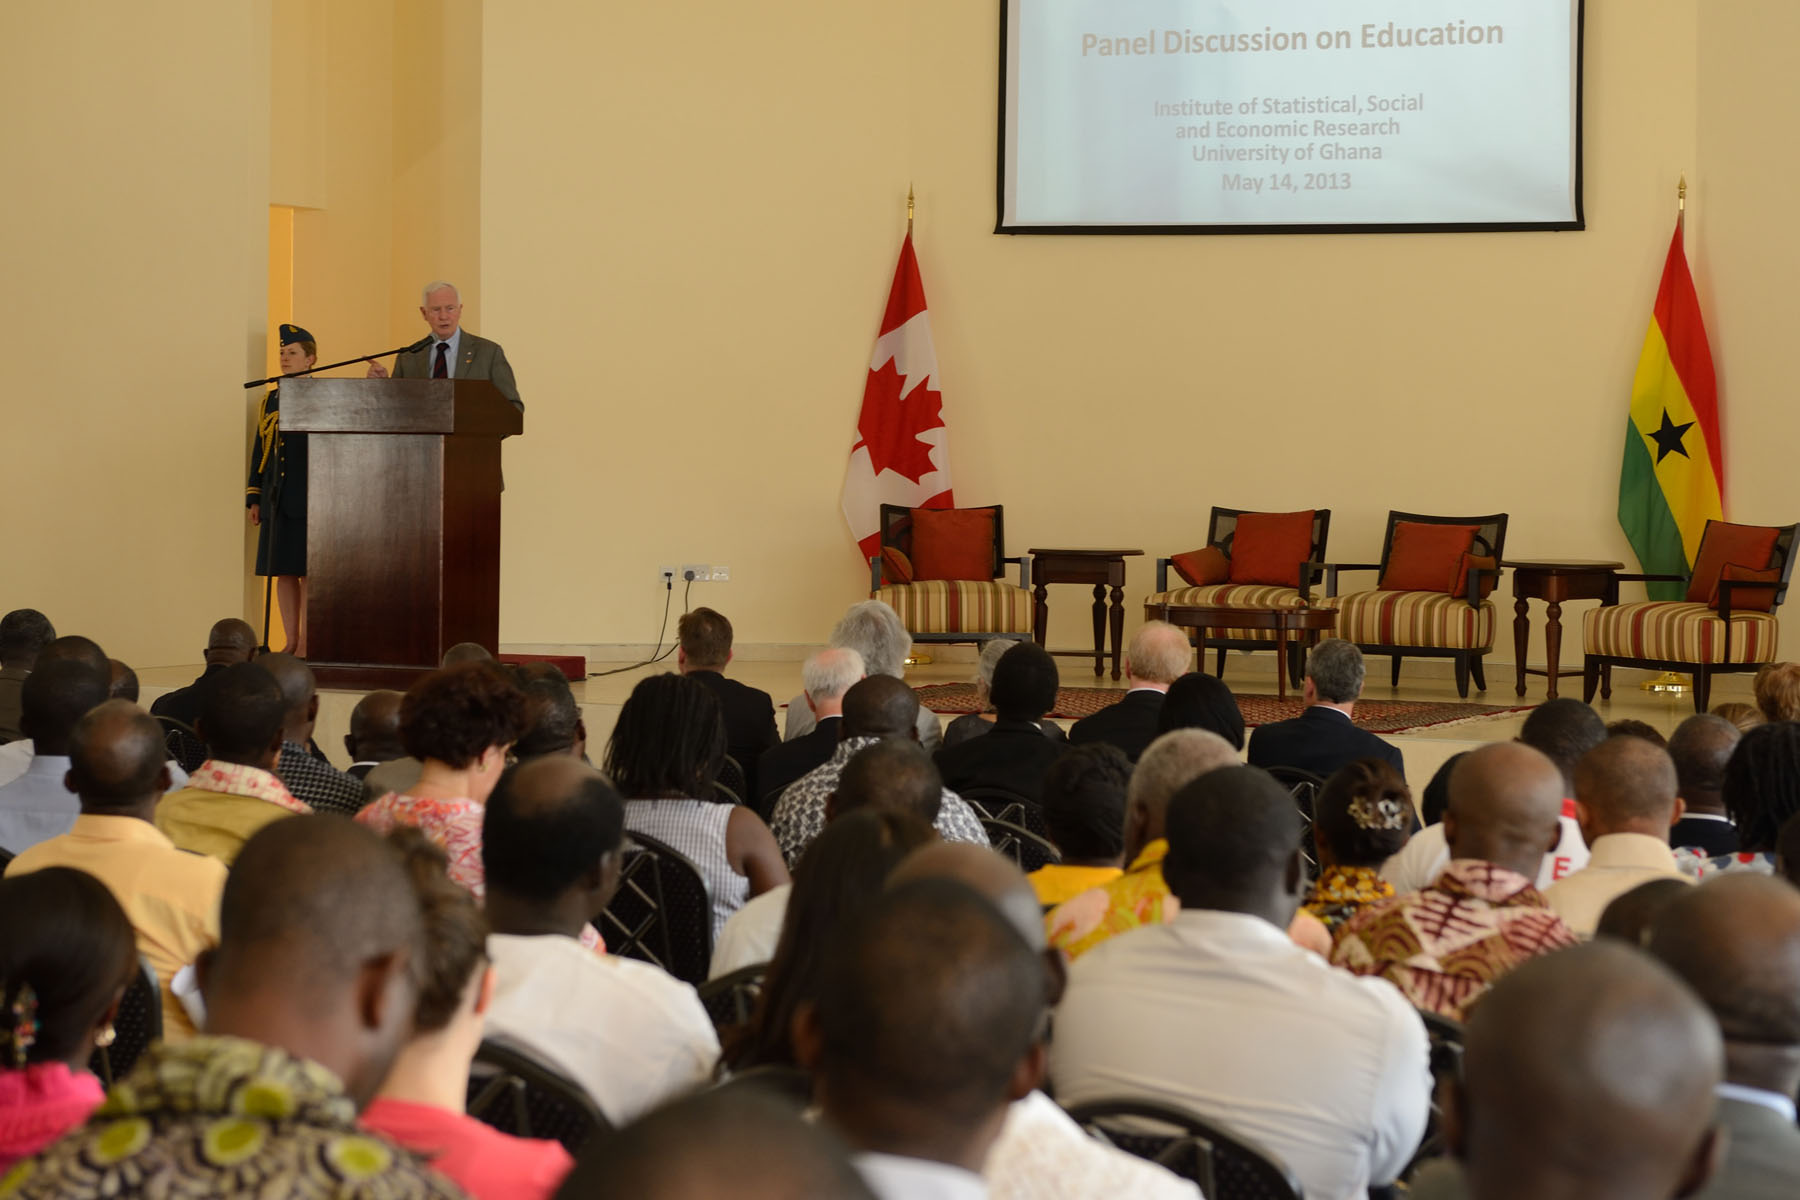 The Governor General delivered a speech on the intersection of education, innovation and the economy to academics, administrators, university students and NGOs that specialize in education and development.